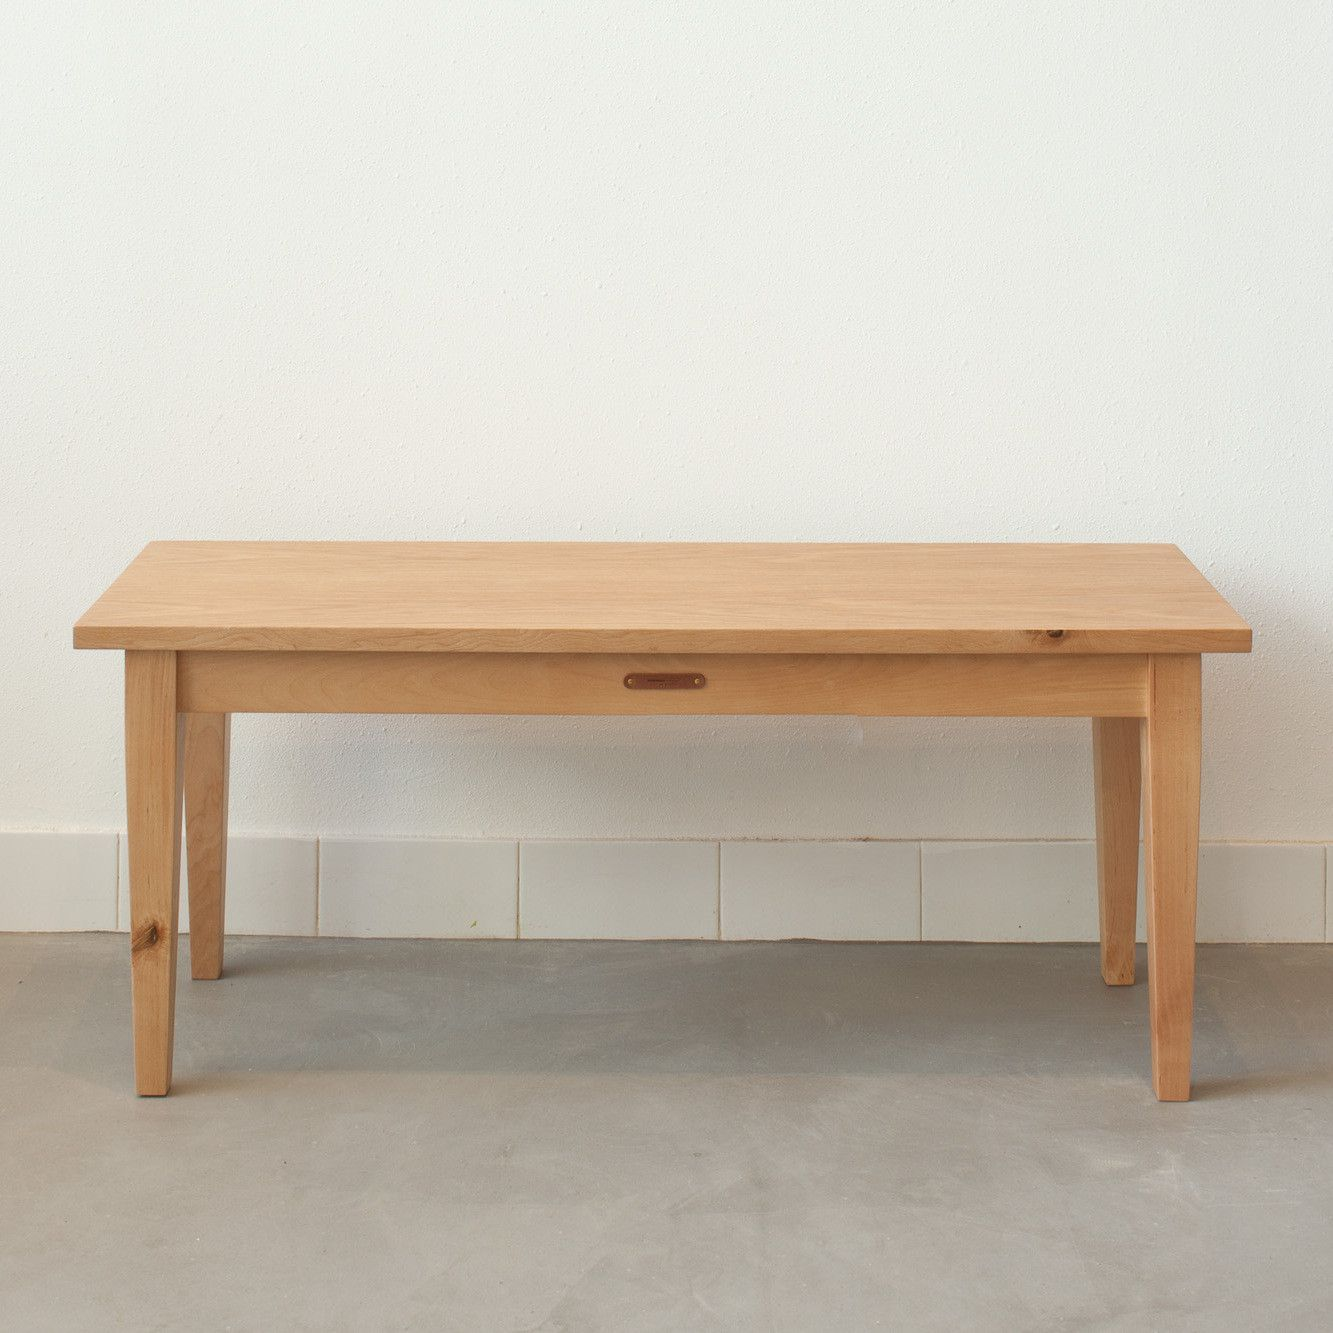 Uchi bench II - Bench - OUT OF STOCK